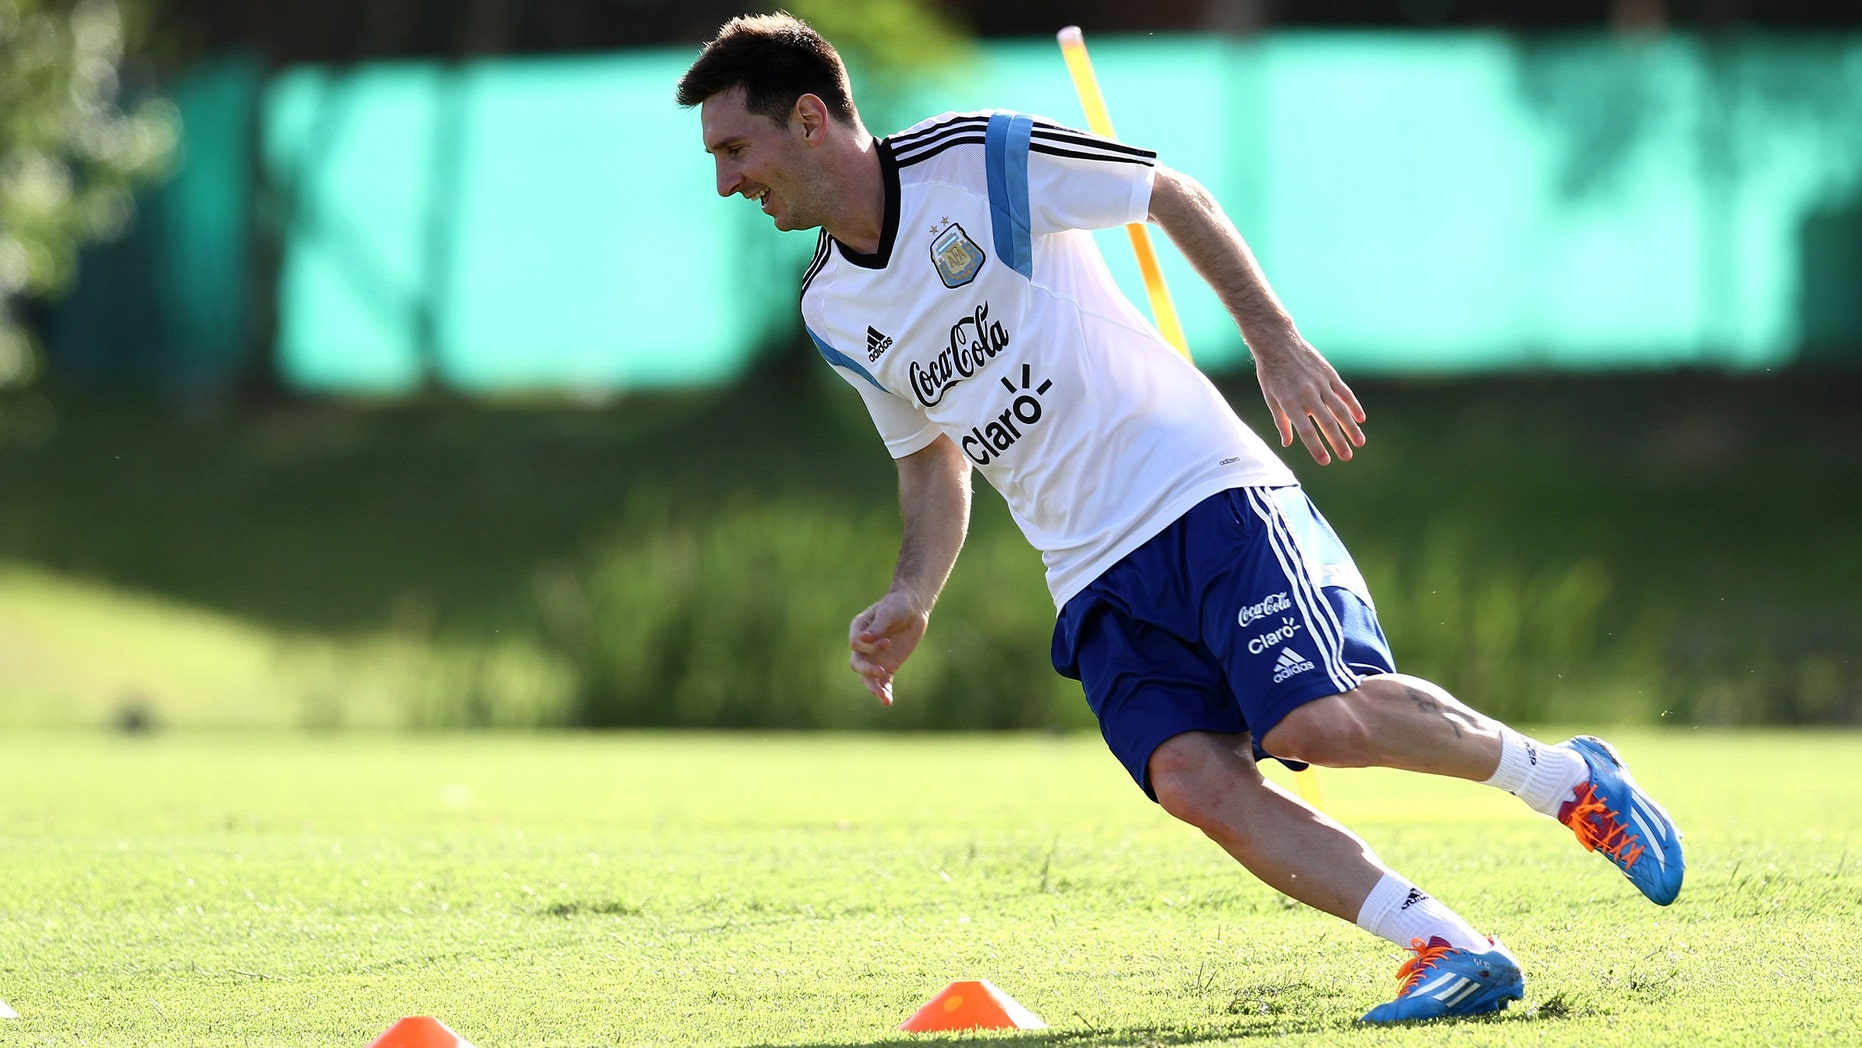 In this picture released by Argentina's Soccer Federation, Lionel Messi trains at Argentina's training facilities in the outskirts of Buenos Aires, Thursday, Dec. 5, 2013. Messi is in Argentina recovering from an injury. (AP Photo/Shu Kitayama,Argentina's Soccer Federation)